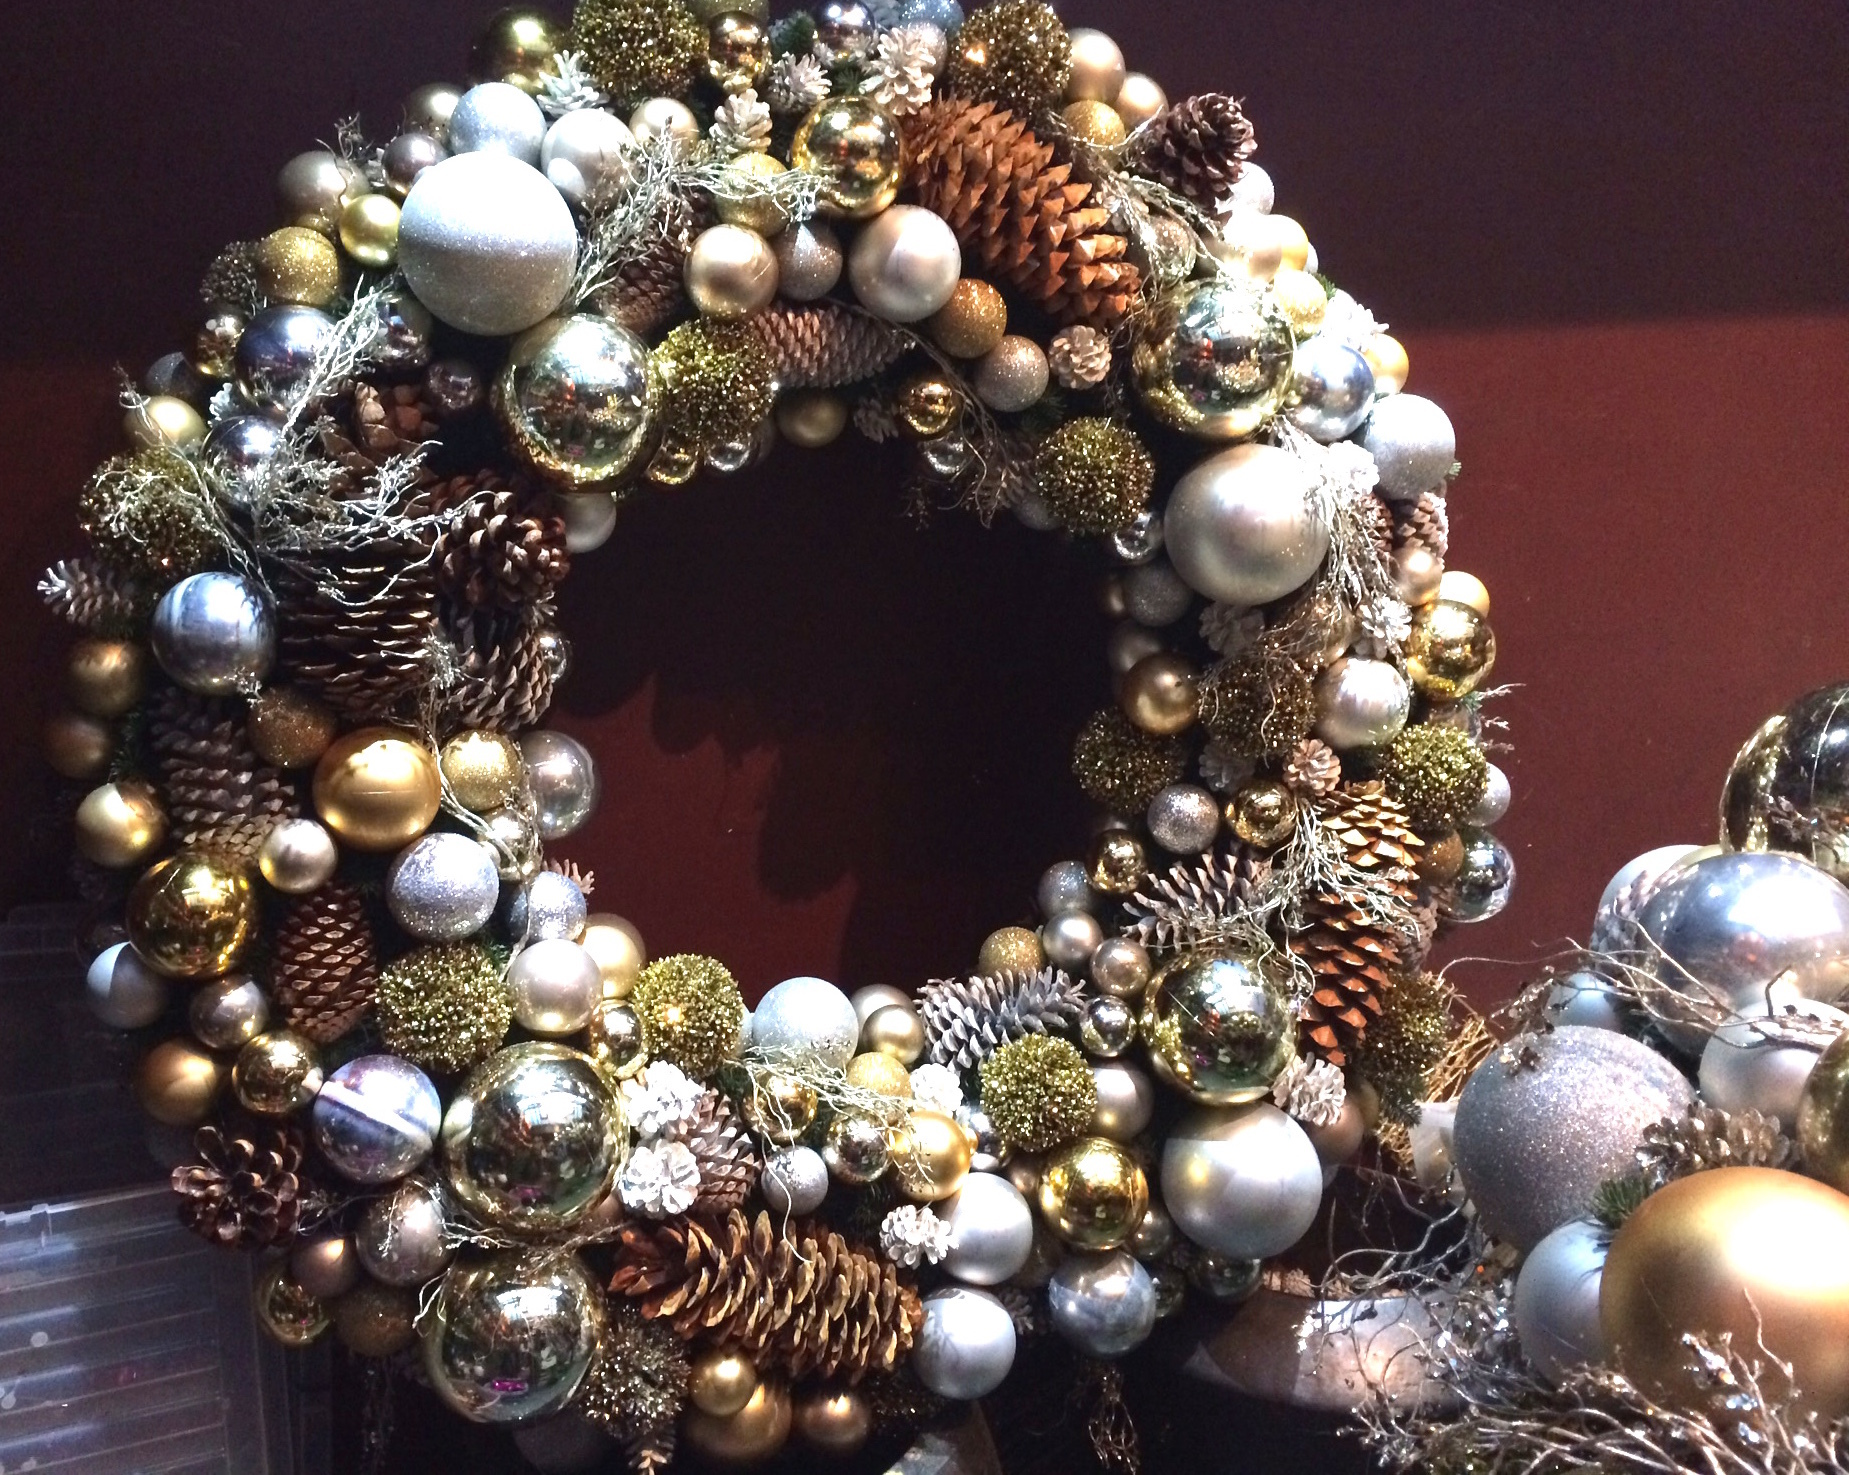 Join me and make your own 'Luxury Christmas Wreath'